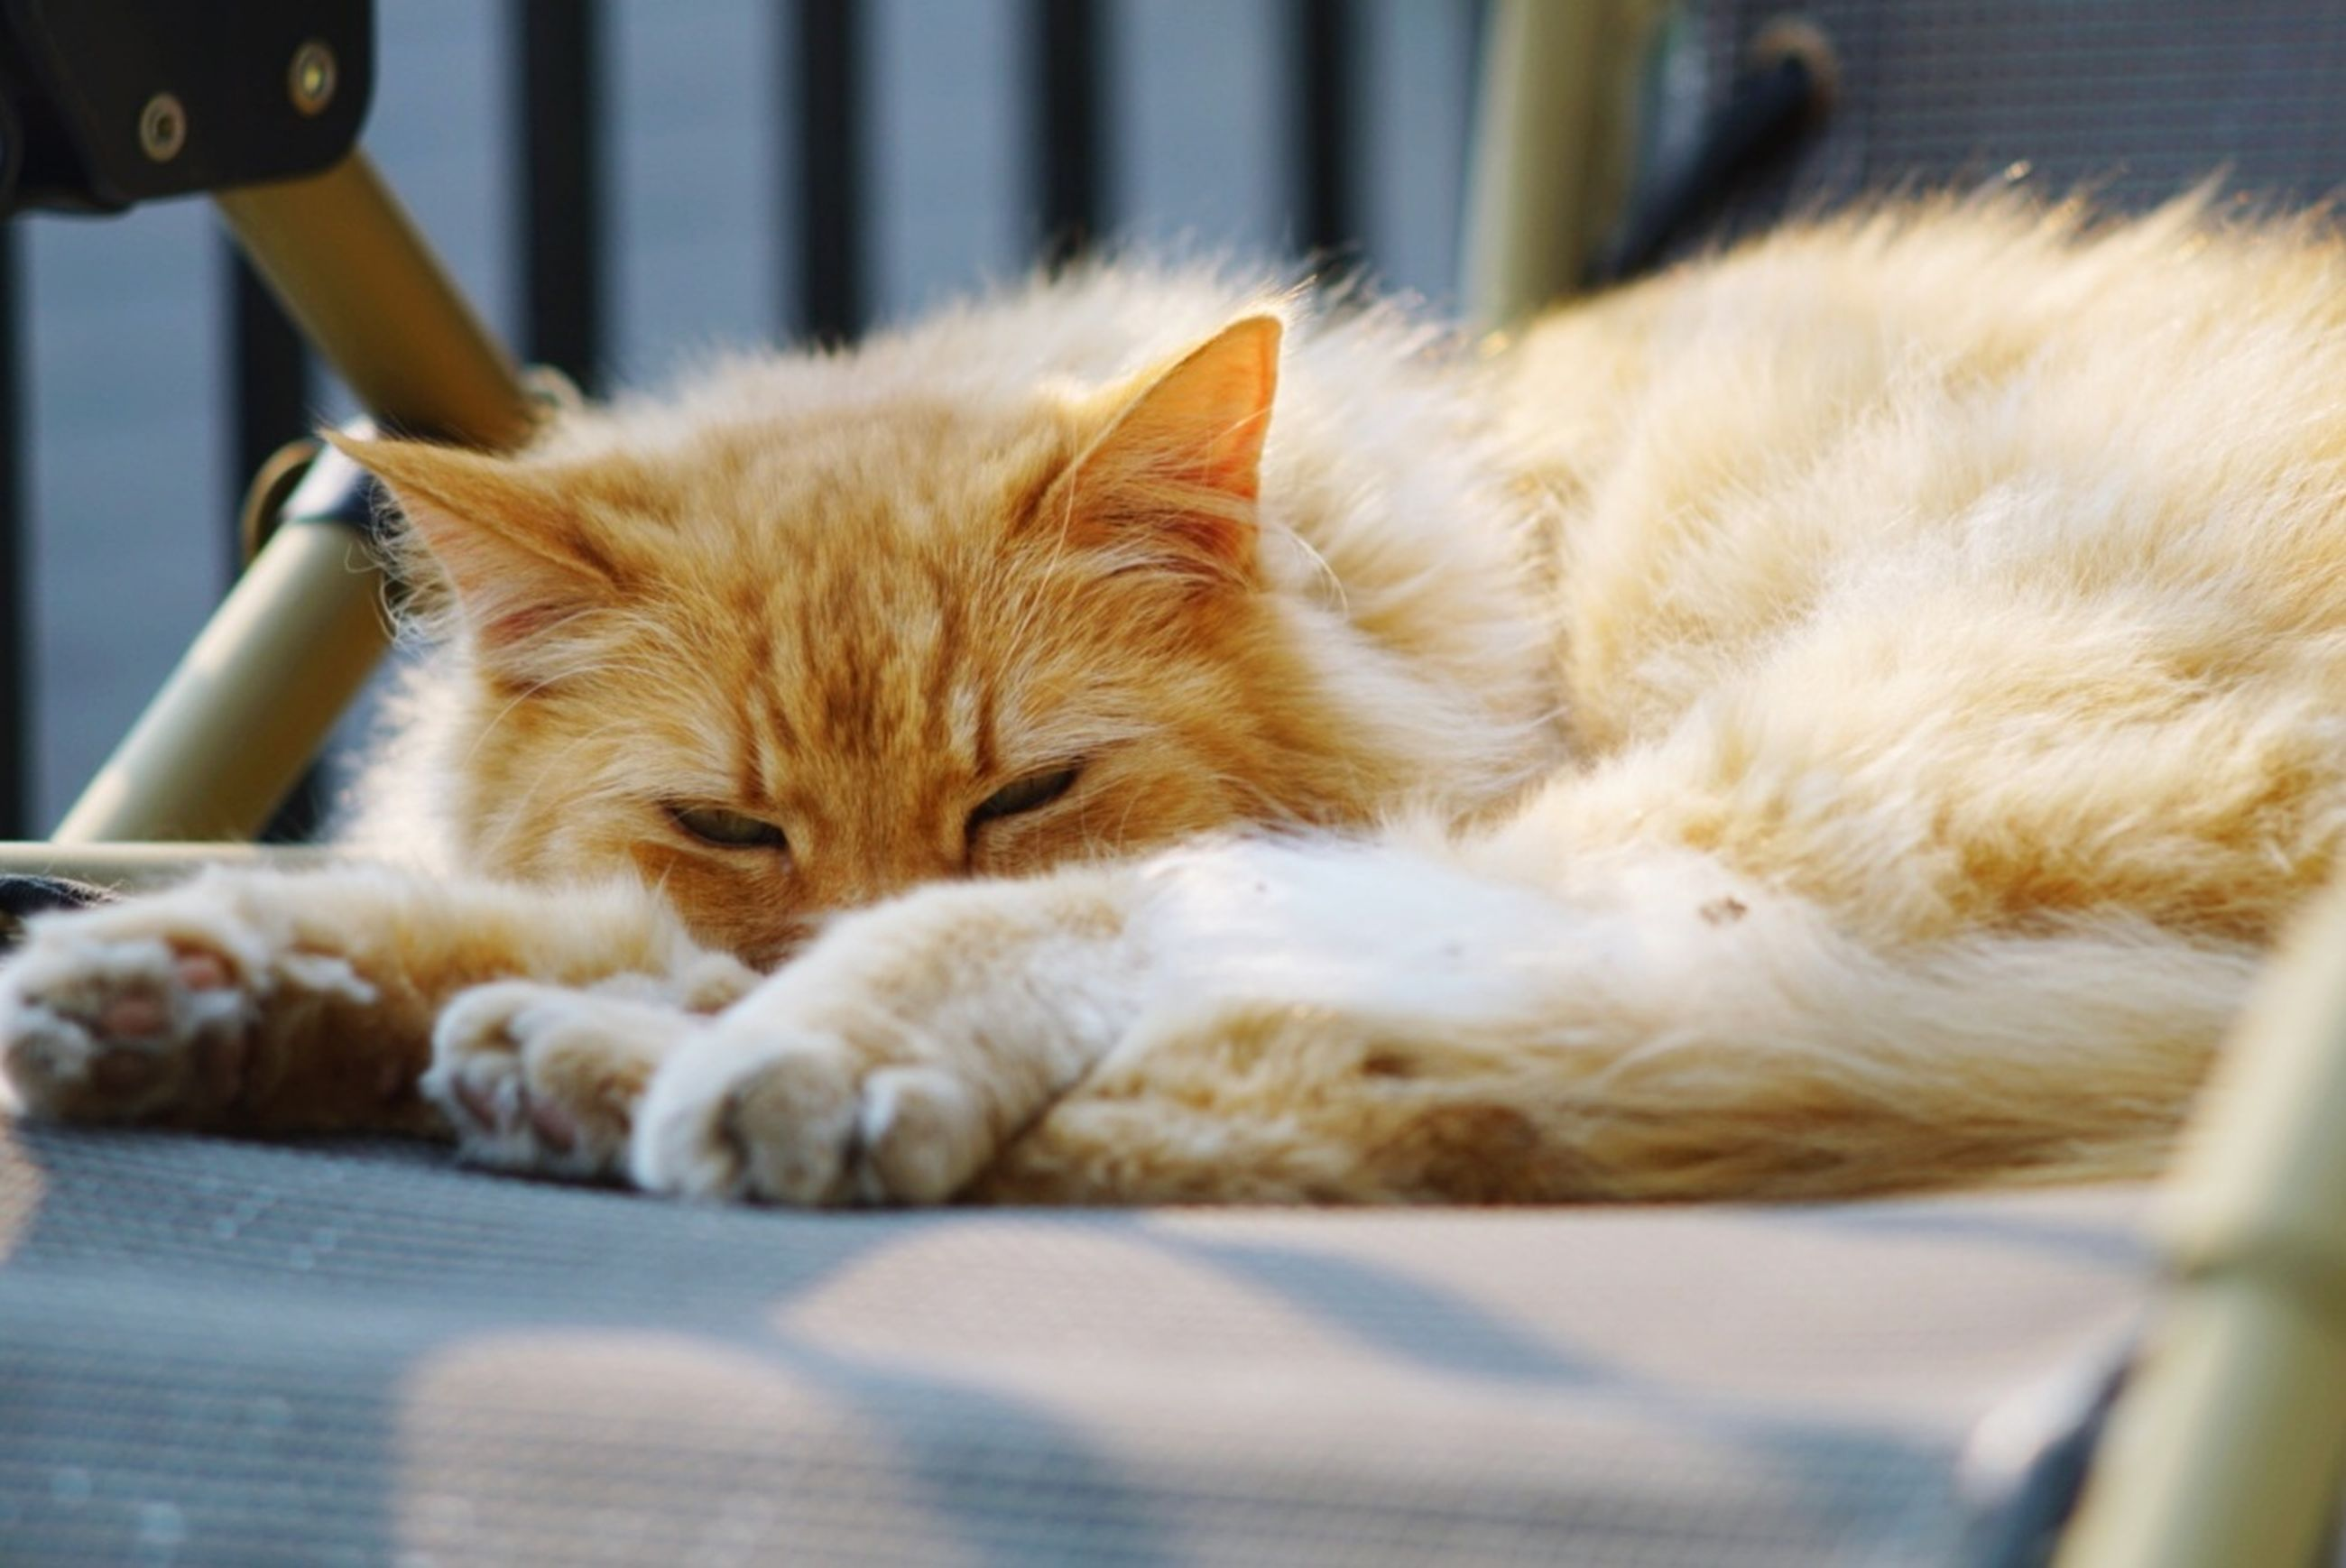 cat, domestic cat, relaxation, feline, mammal, domestic, pets, animal themes, animal, domestic animals, one animal, eyes closed, sleeping, resting, lying down, no people, vertebrate, selective focus, whisker, close-up, ginger cat